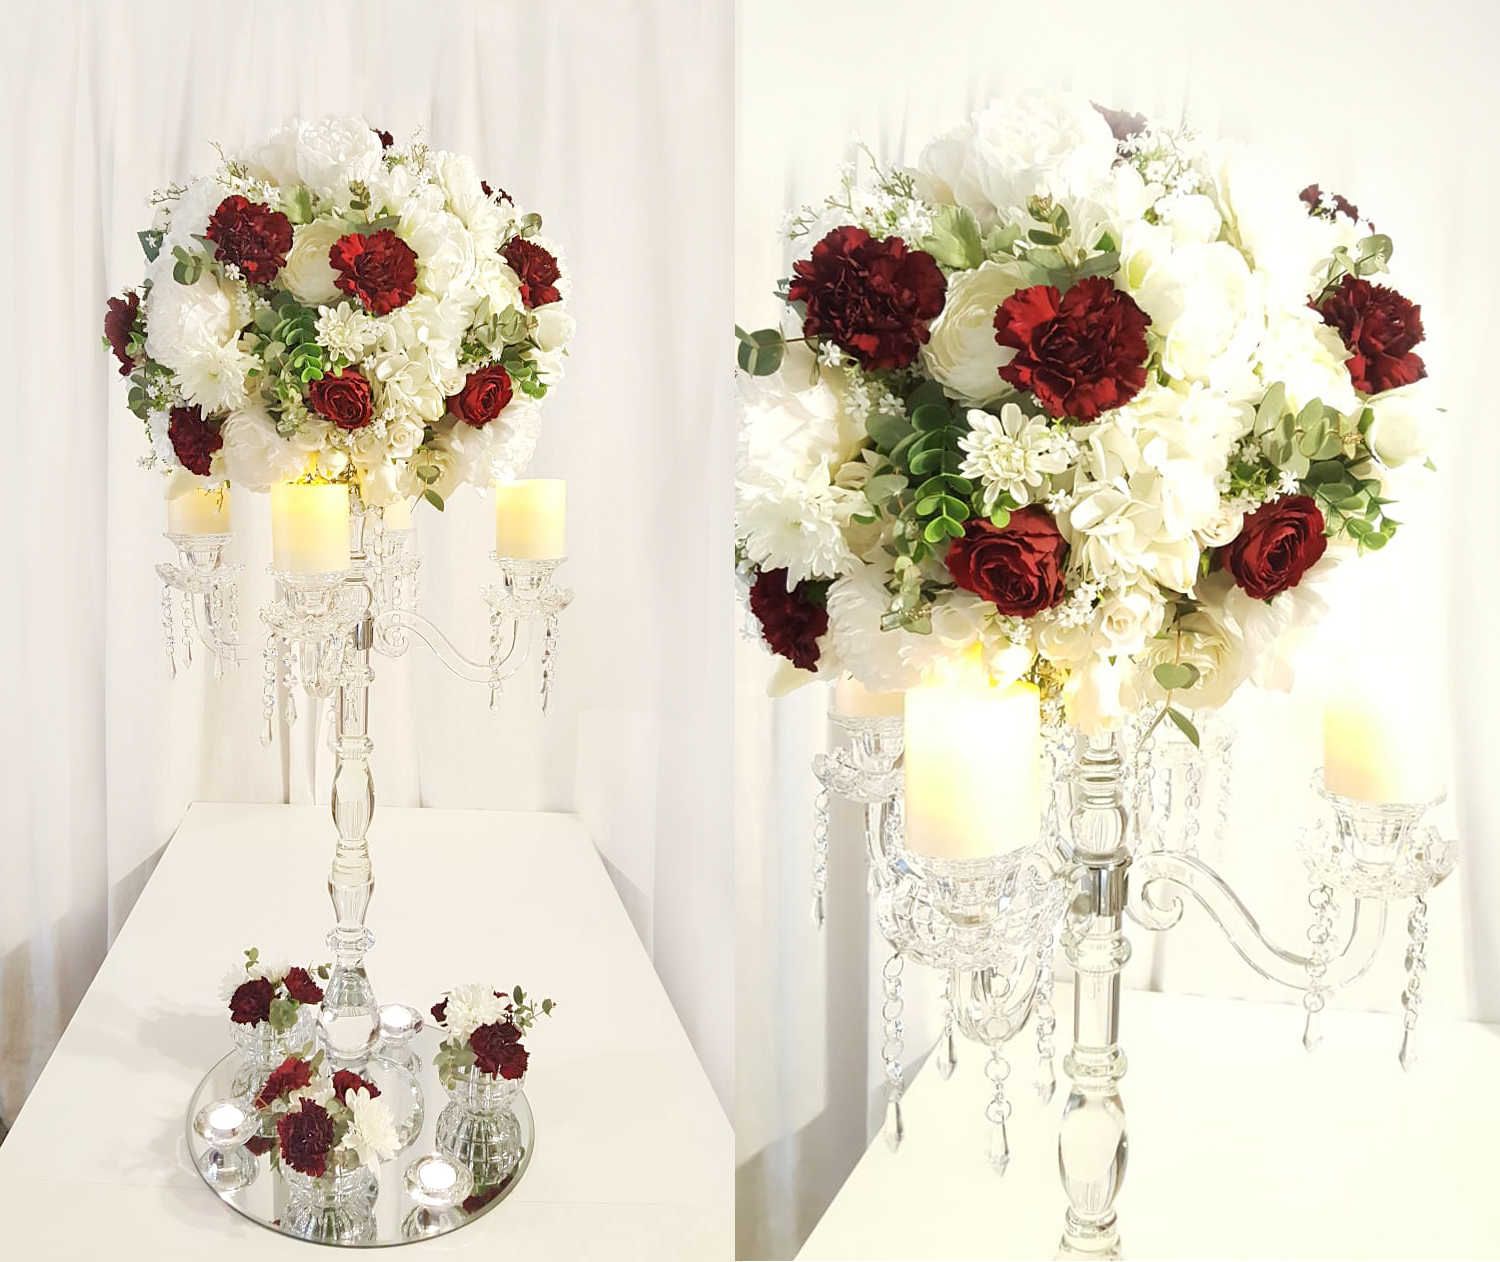 White Burgundery Flowerball Candelabra Wedding Decorations By Naz